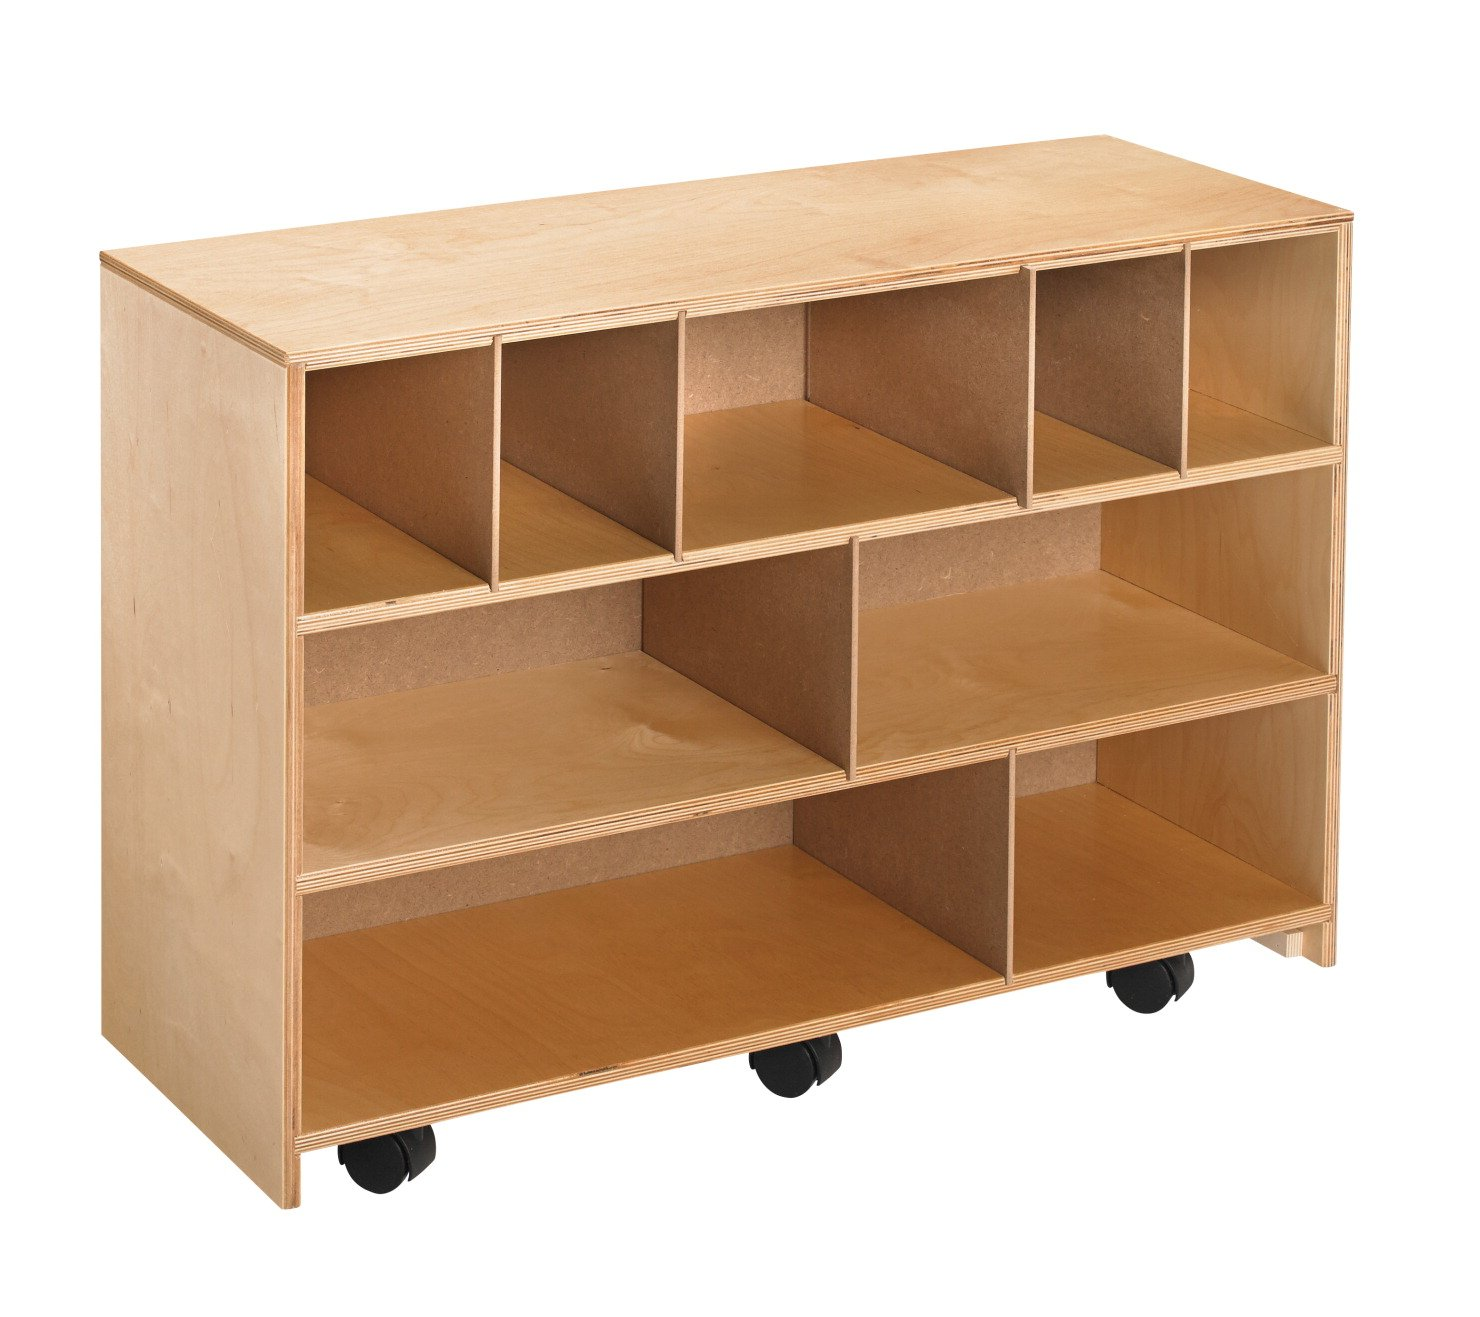 Childcraft 205879 Mobile Block Storage Cabinet, Wood, 35-3/4'' x 13'' x 24-3/4'', Natural Wood Tone